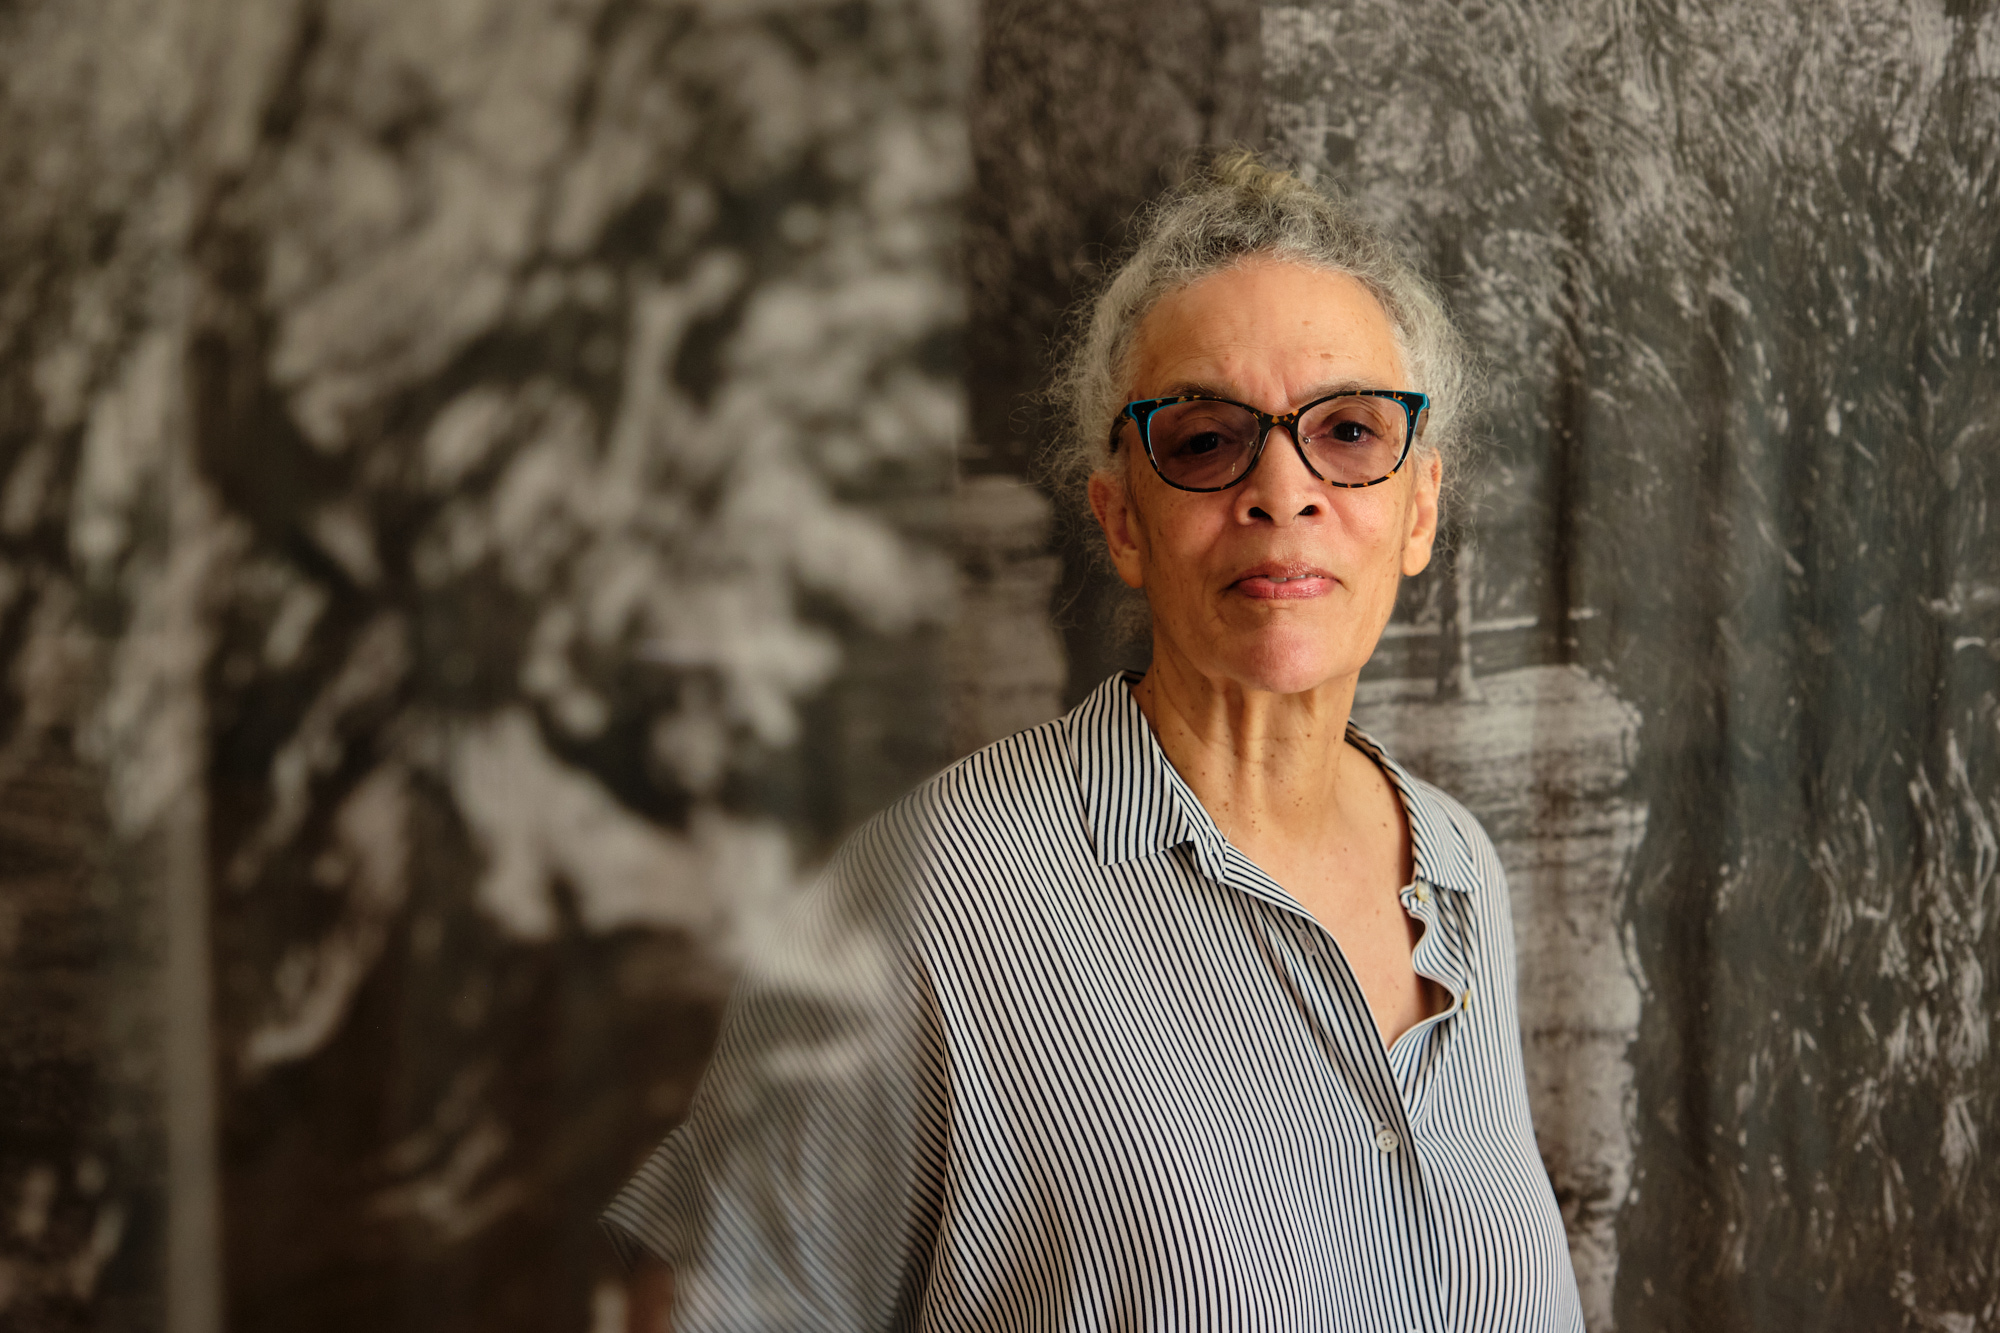 'I Got to Be the Artist I Wanted to Be': Sculptor Maren Hassinger on What Success Looks Like for a Black Artist in America